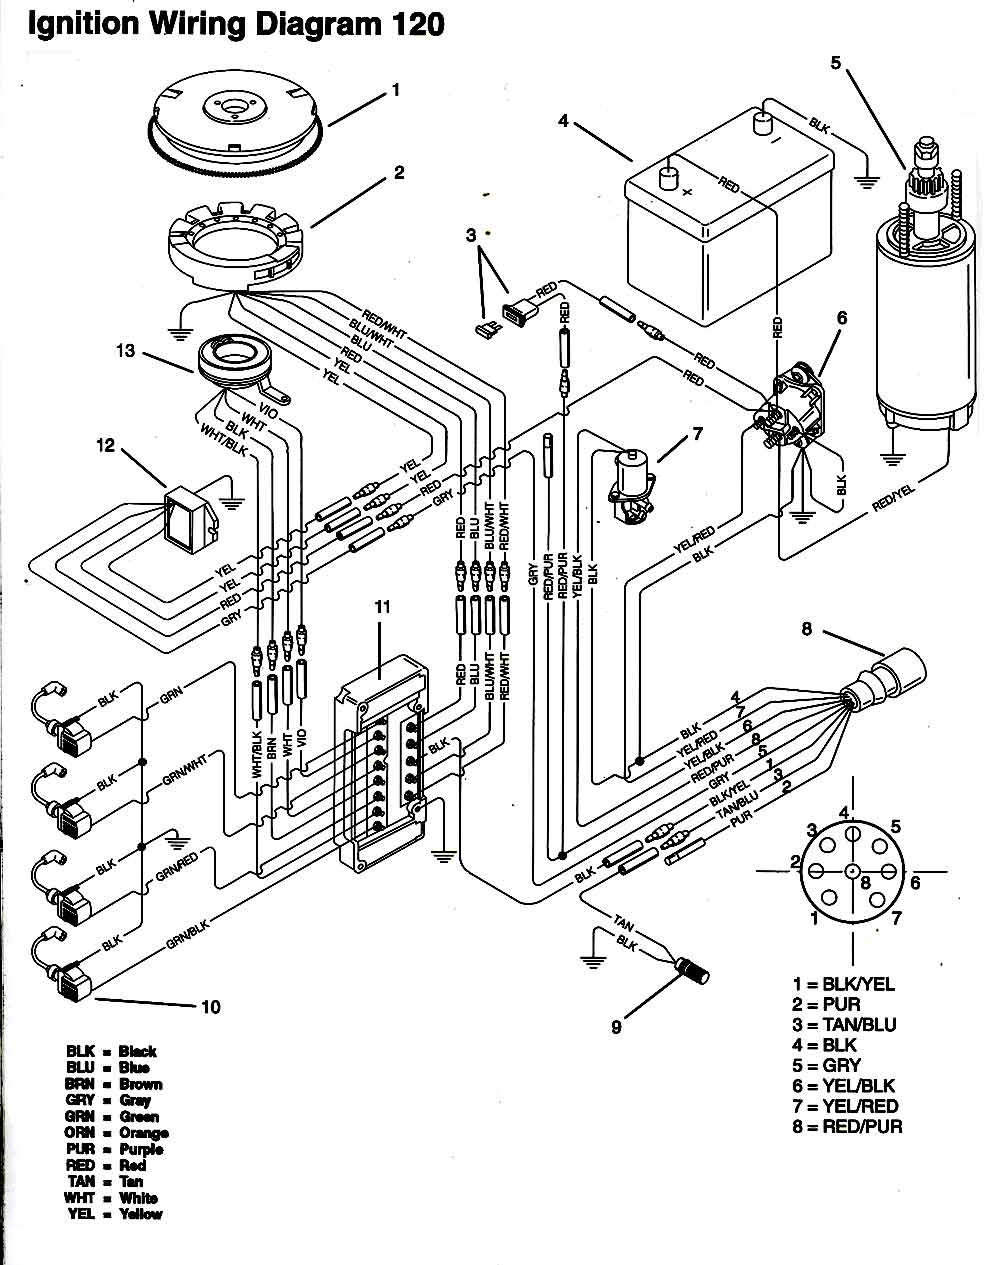 hight resolution of 1991 mercury capri fuse box diagram wiring library rh 10 skriptoase de